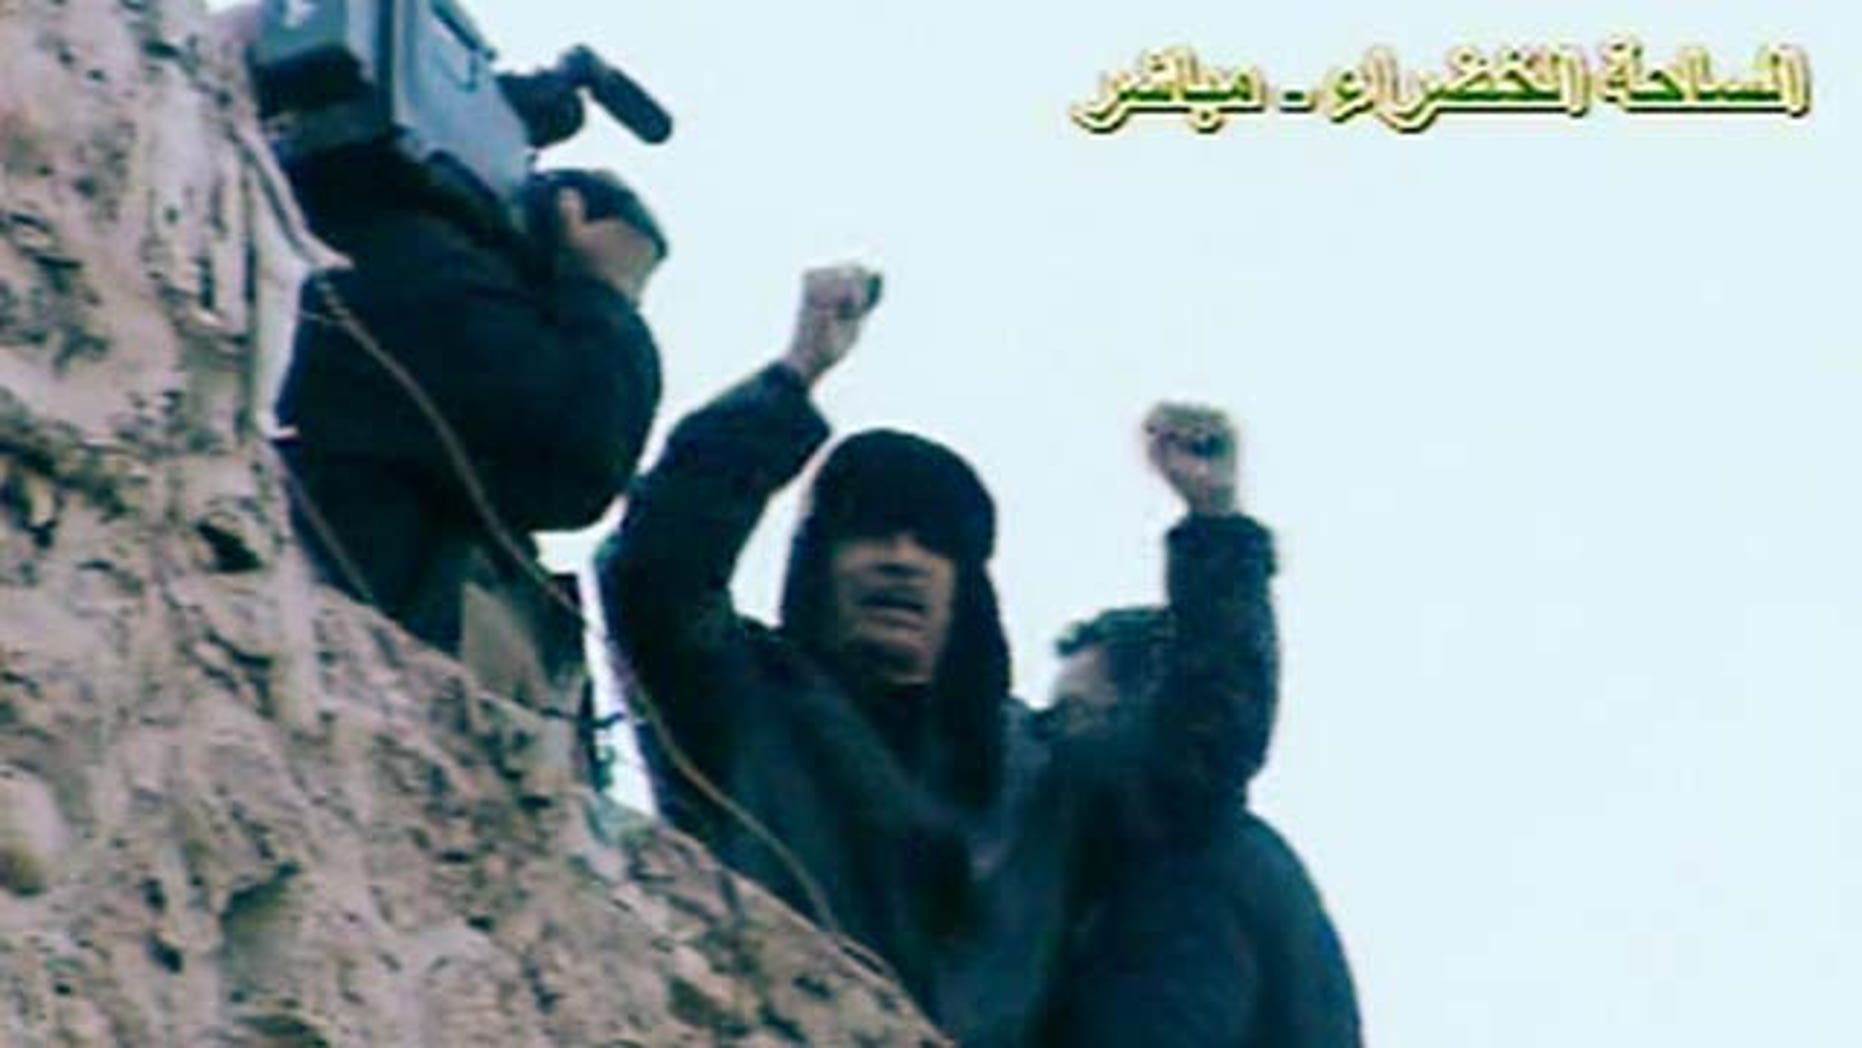 In this Feb. 25, 2011 file image made from Libya State Television, Libyan leader Moammar Gadhafi speaks to followers from the top of a stone wall in The Green Square, Tripoli, Libya. Even after rebels stormed into the capital and overwhelmed his residence, Libya's Moammar Gadhafi has plenty of places to hide. The man who ruled Libya for 42 years is known to have deep bunkers under his Bab al-Aziziya compound in Tripoli, which rebel fighters seized Tuesday, Aug. 23, 2011.